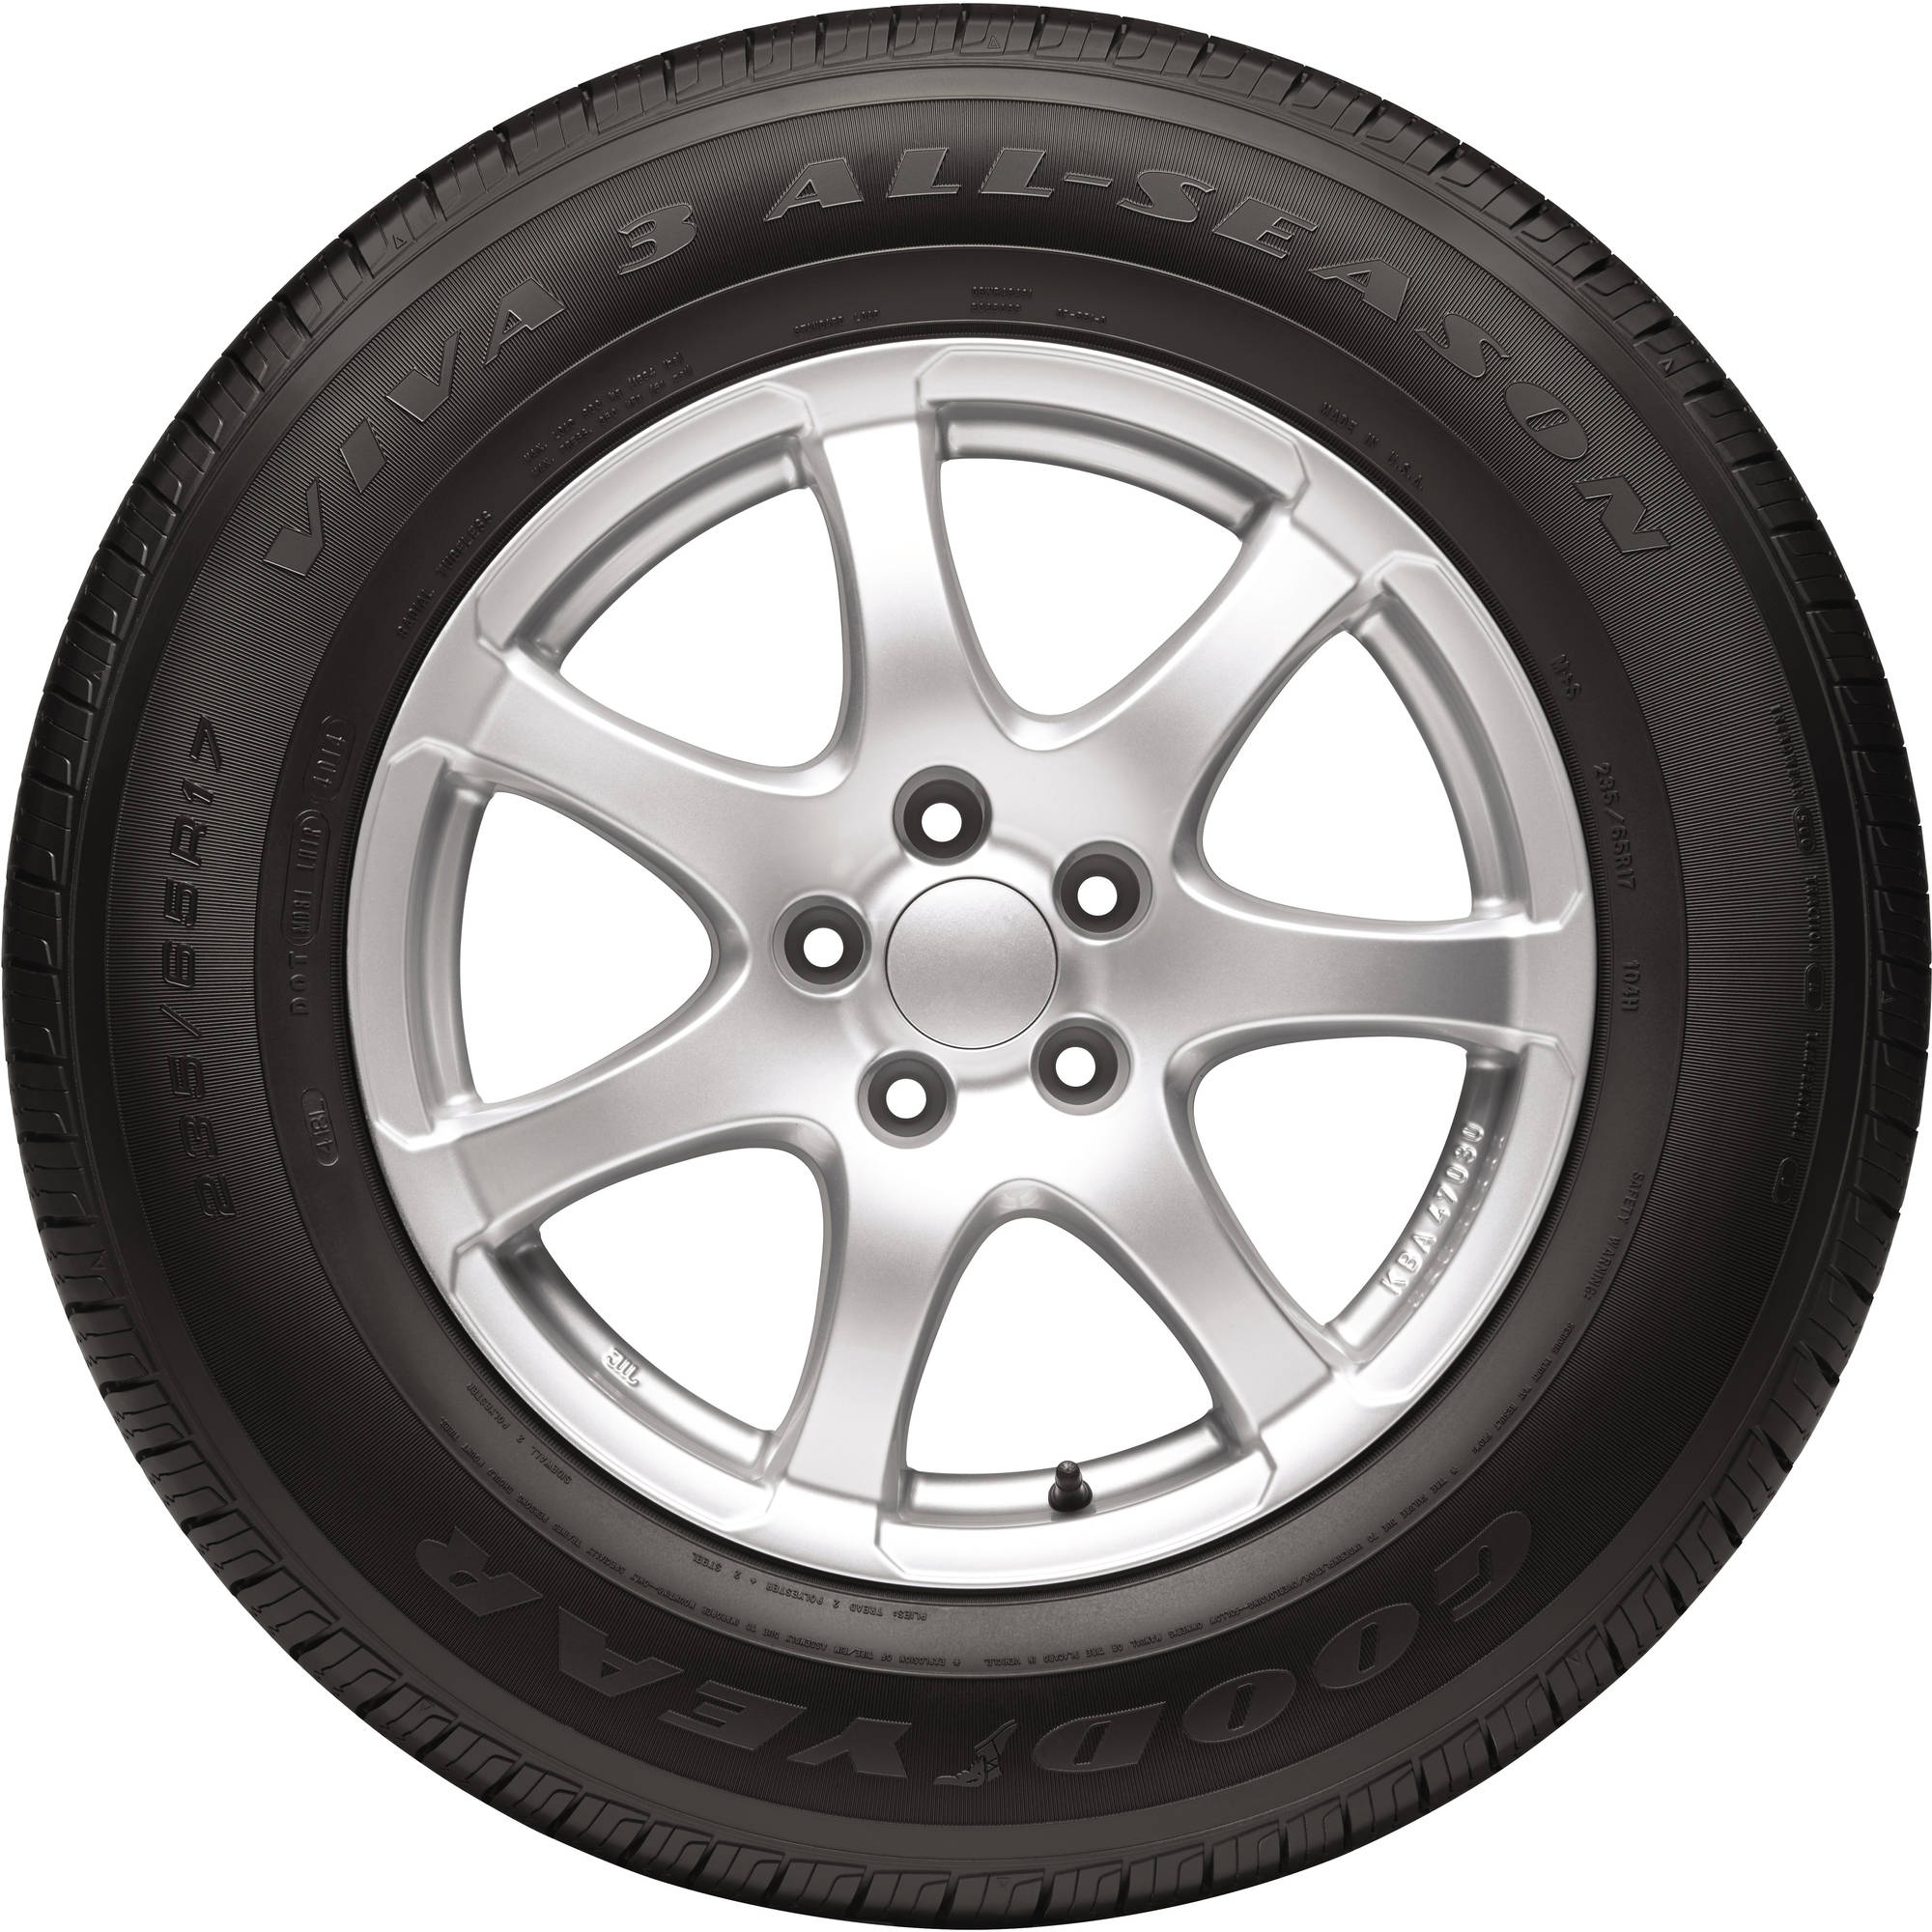 Goodyear Viva 3 All Season Tire 215 60R16 95T Walmart